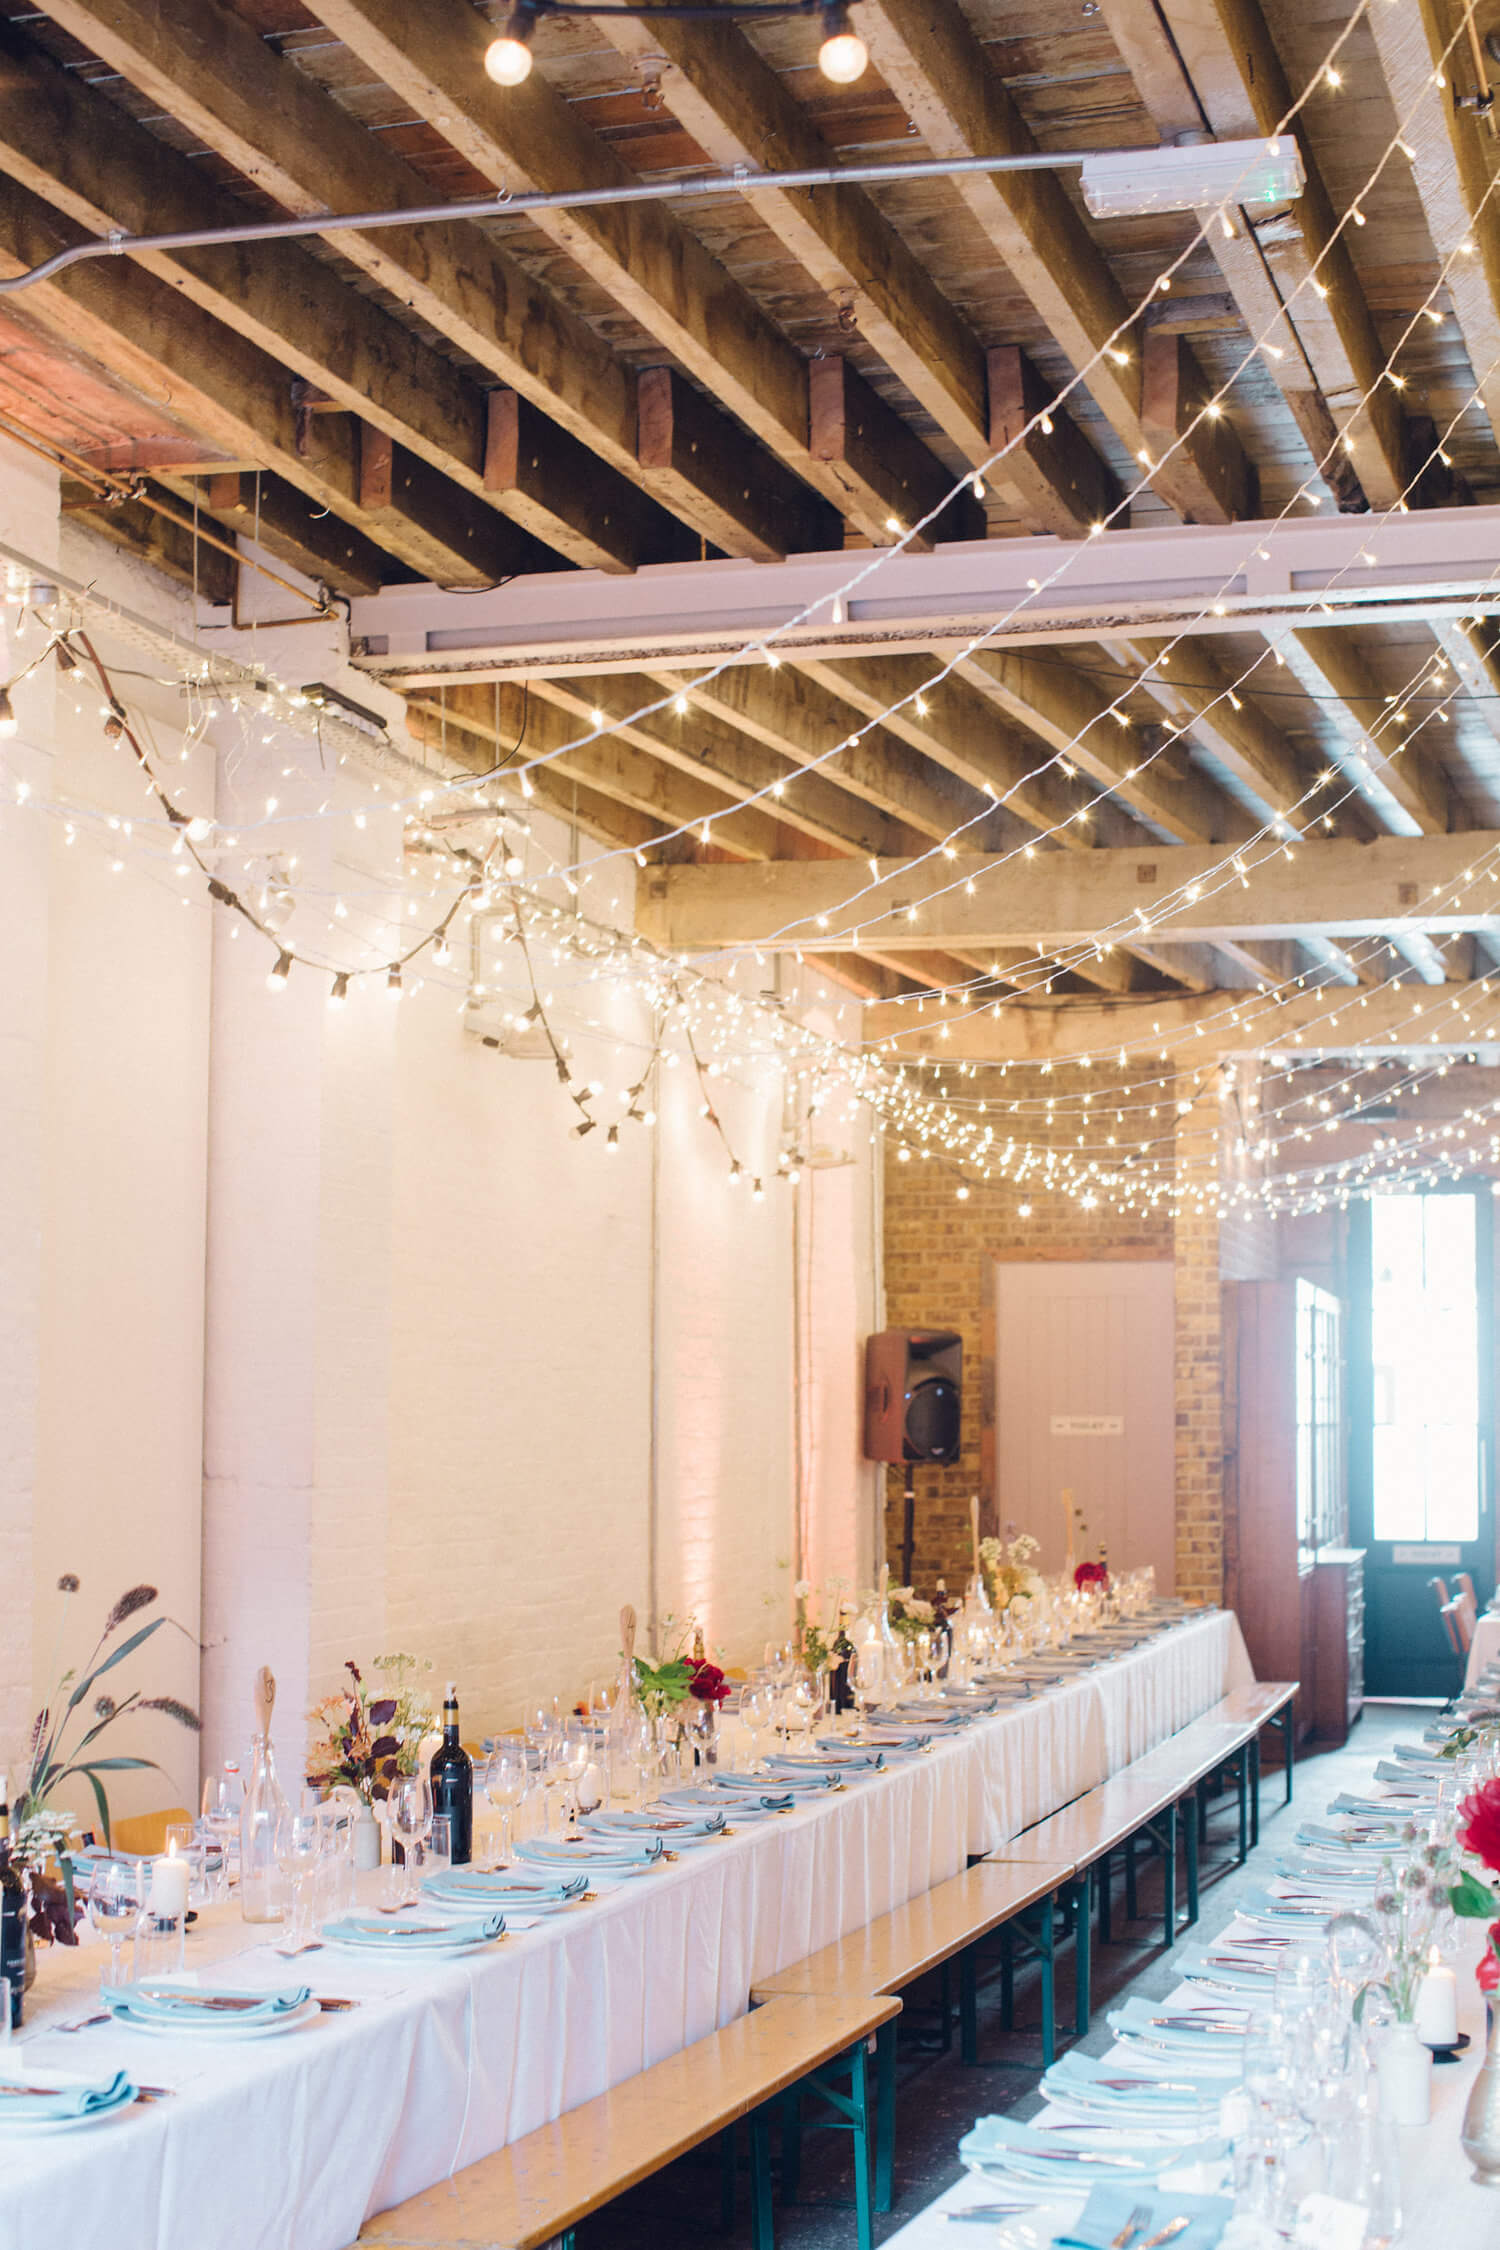 Quirky Venue, Non-traditional wedding planner, London Wedding coordination, Bespoke weddings, Brixton Wedding, Informal, Secret wedding venue